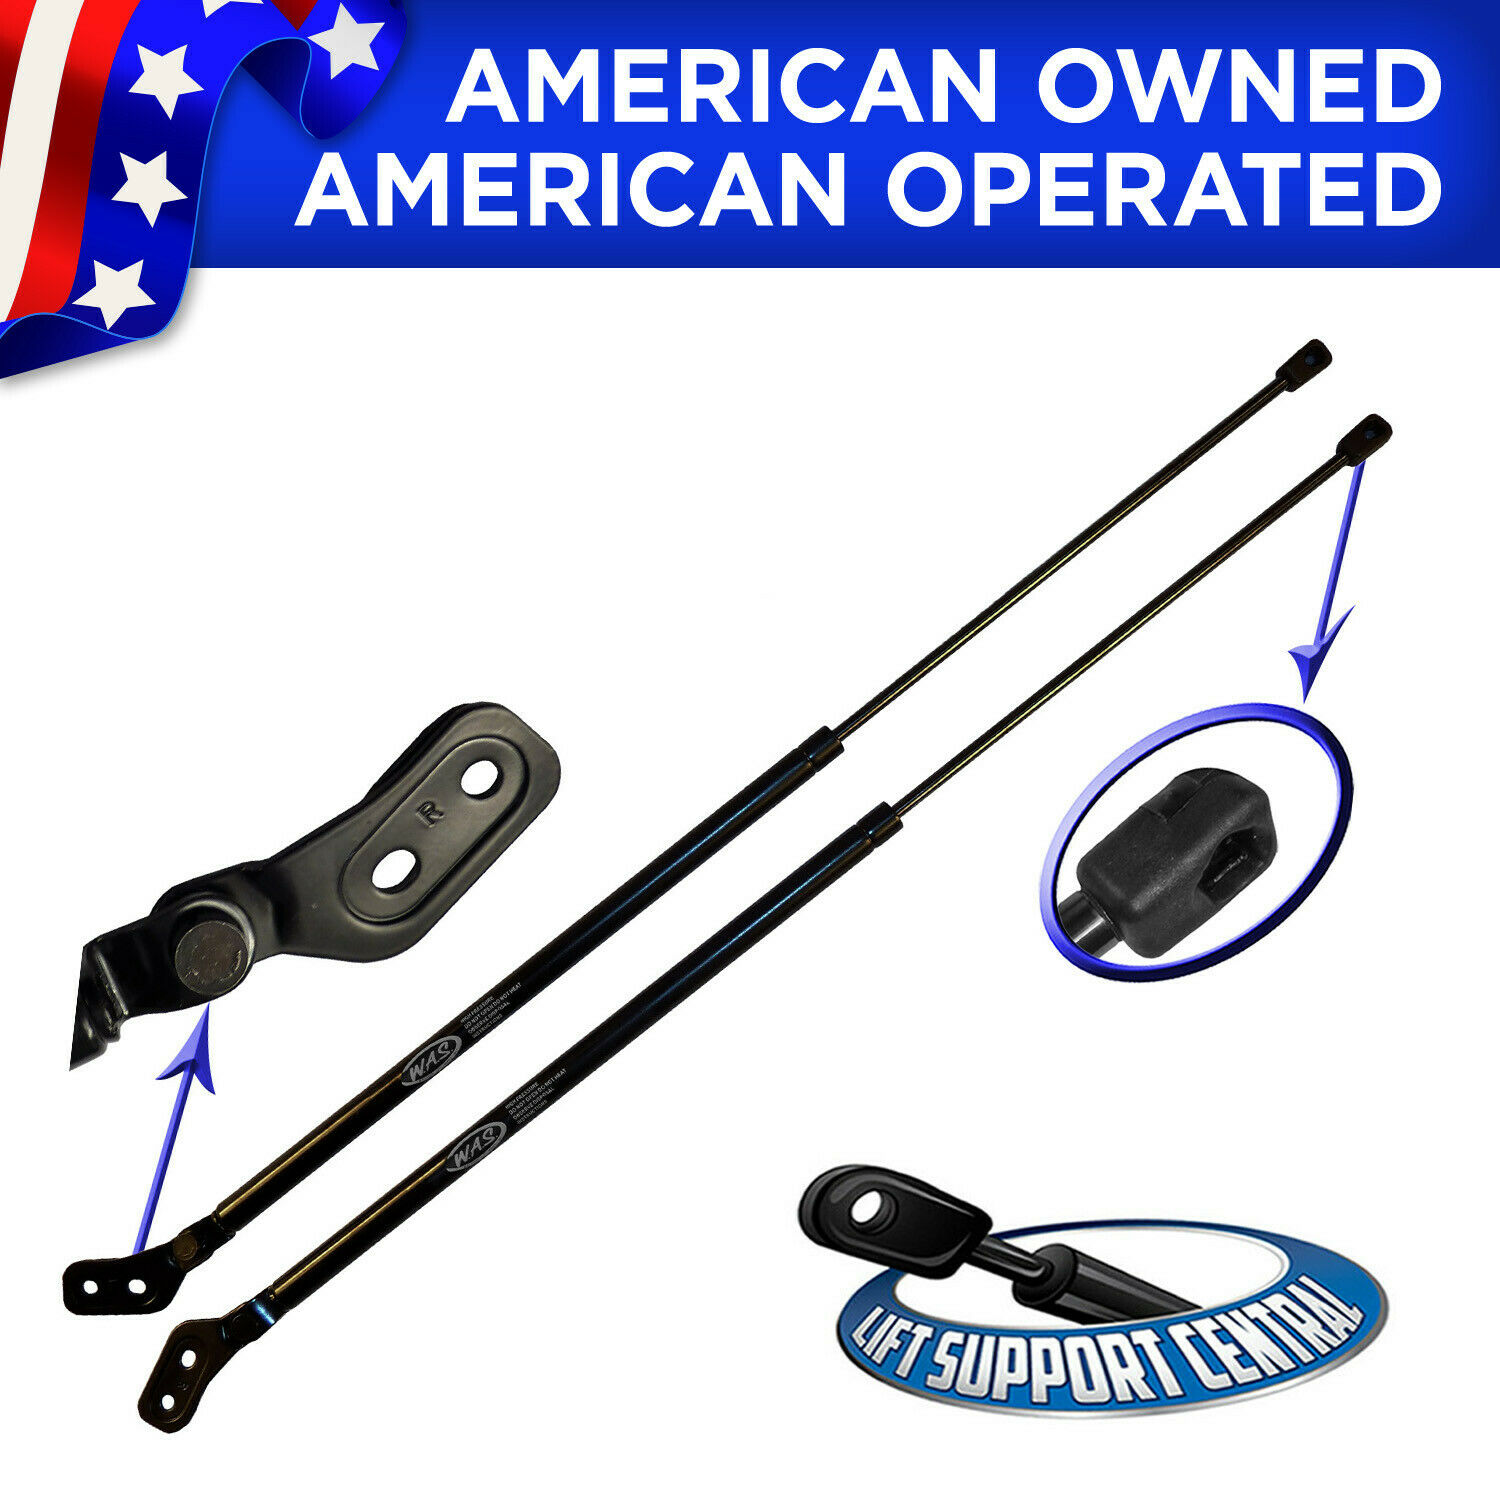 2 Rear Hatch Door Liftgate Lift Supports Struts For 00 04 Kia Sedona Spectra Hatchback 1 Of 2free Shipping